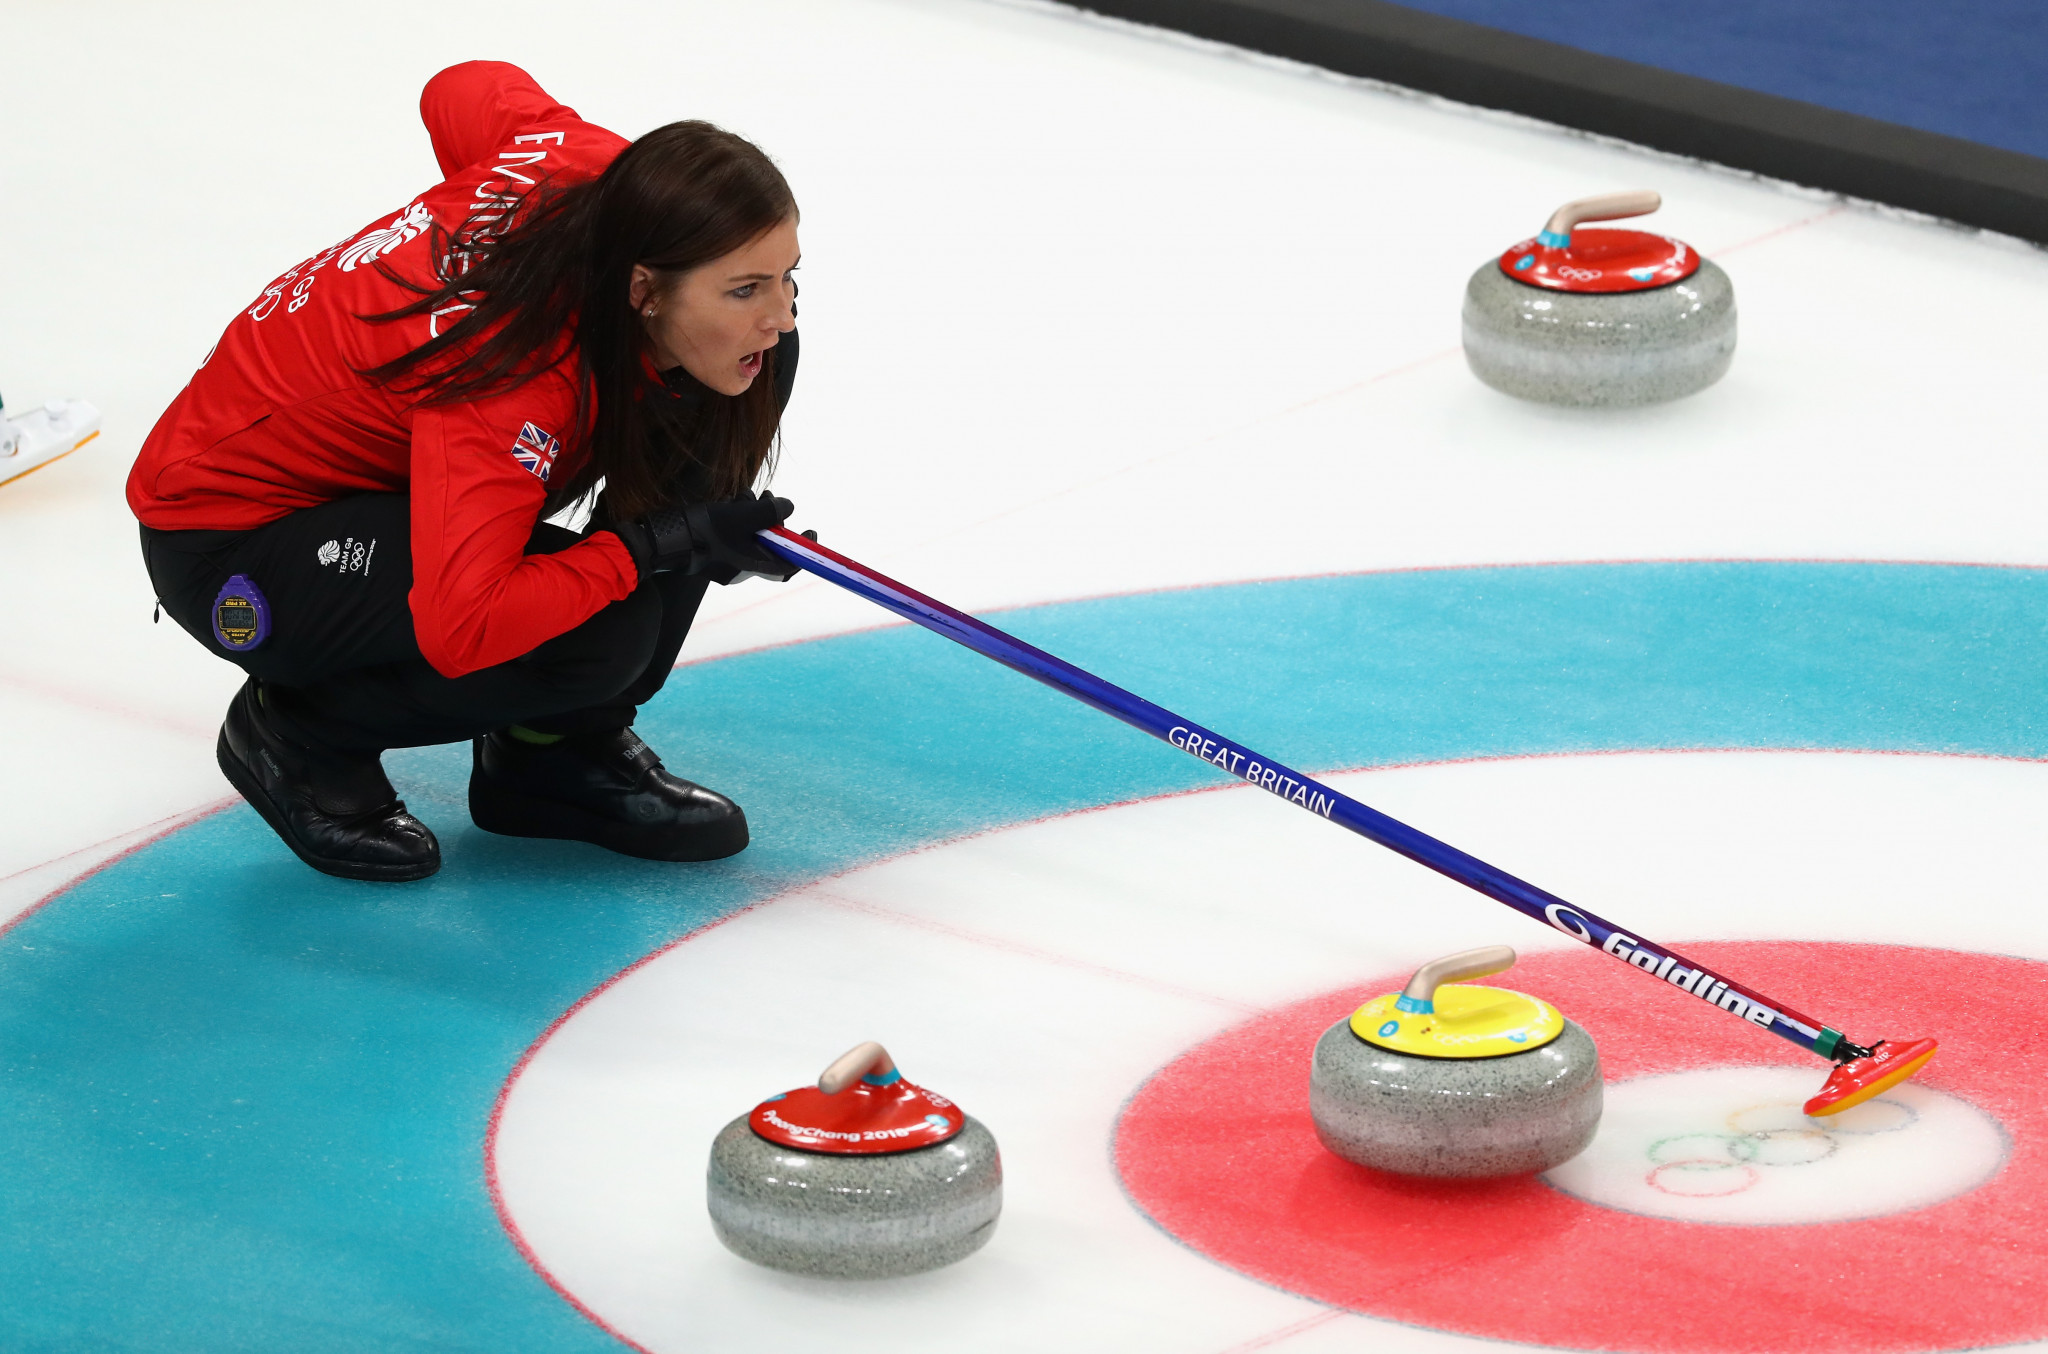 The World Women's Curling Championship is still scheduled to take place in March ©WCF